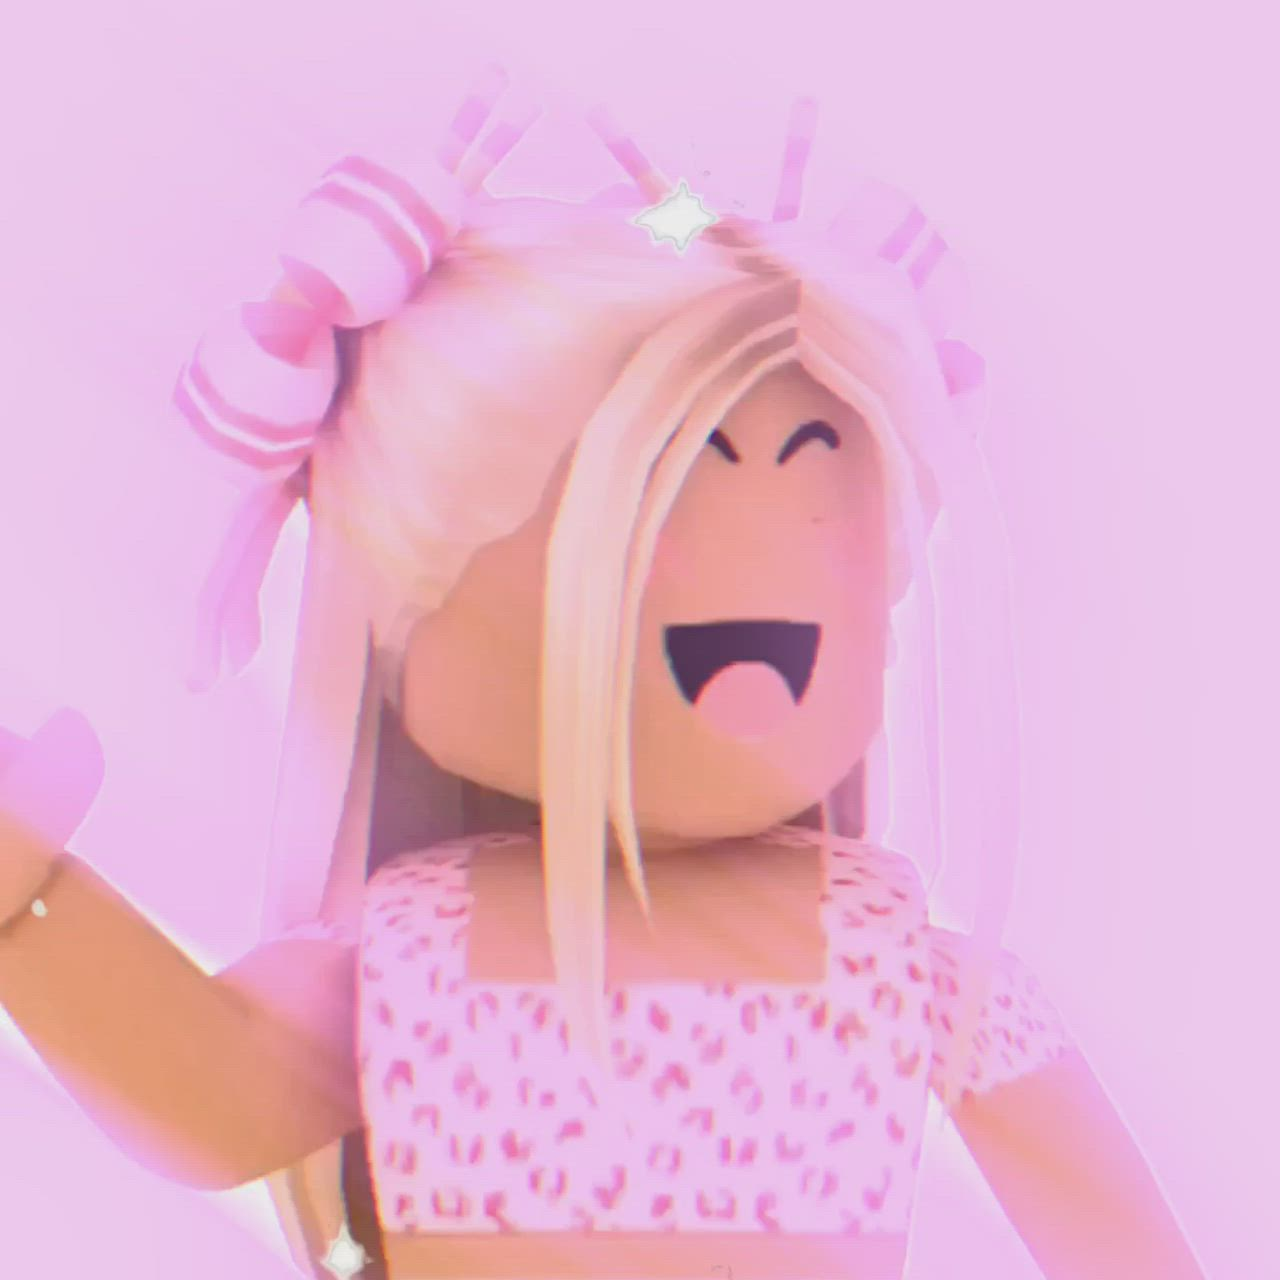 Pin By Soul On Roblox Gfx Intros Video Instagram Cartoon Cute Tumblr Wallpaper Roblox Animation